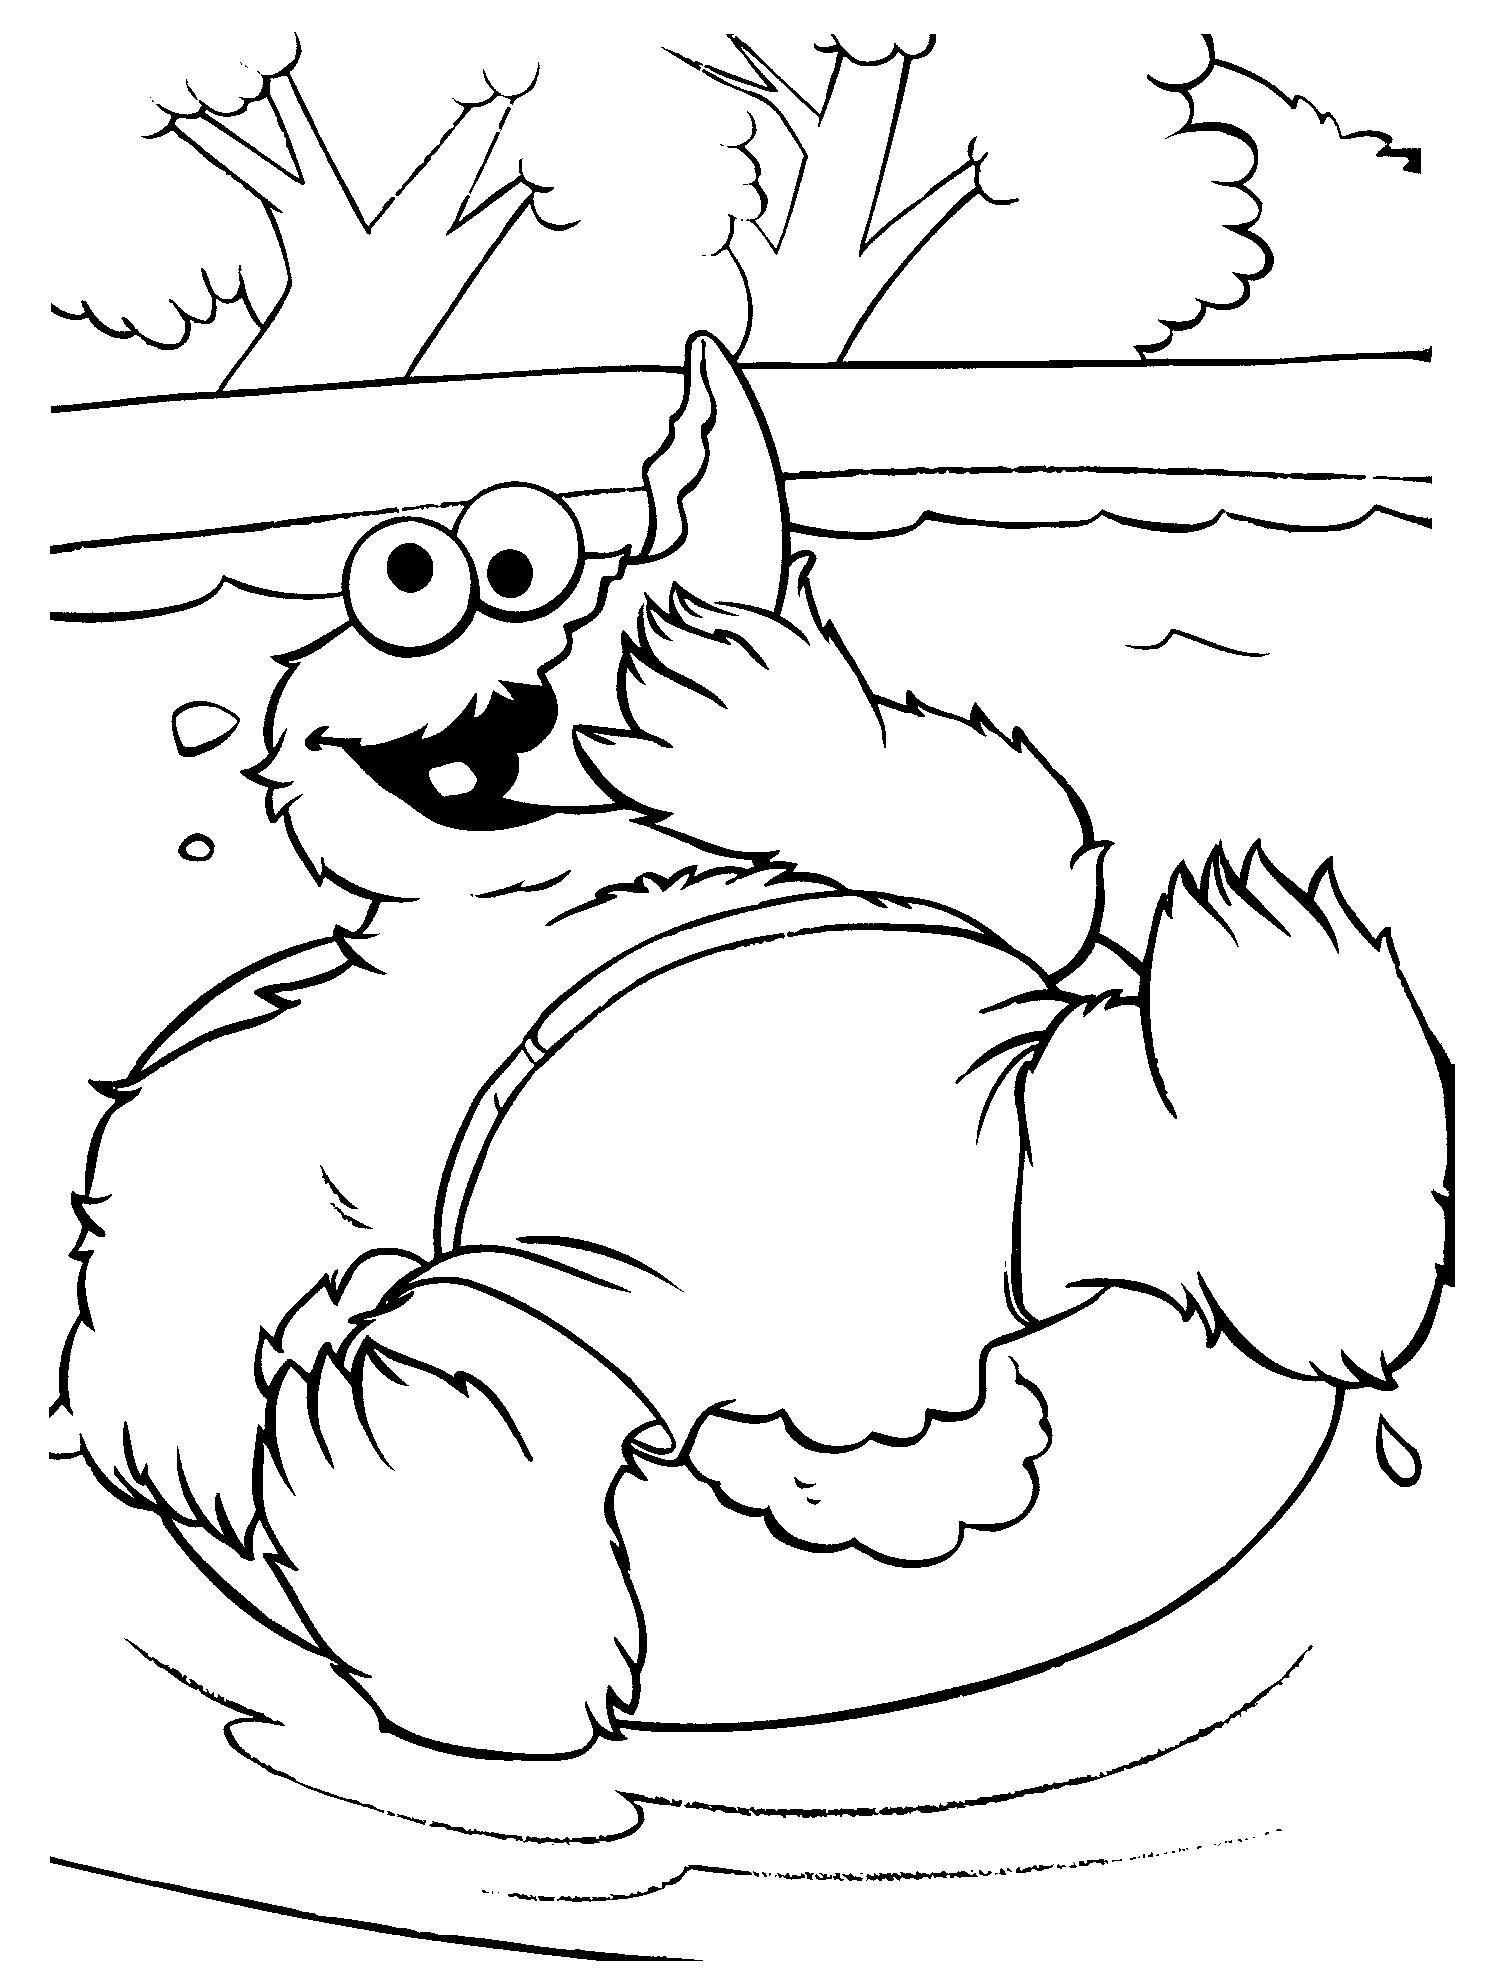 cookie monster tubing coloring pages coloring pages sesame